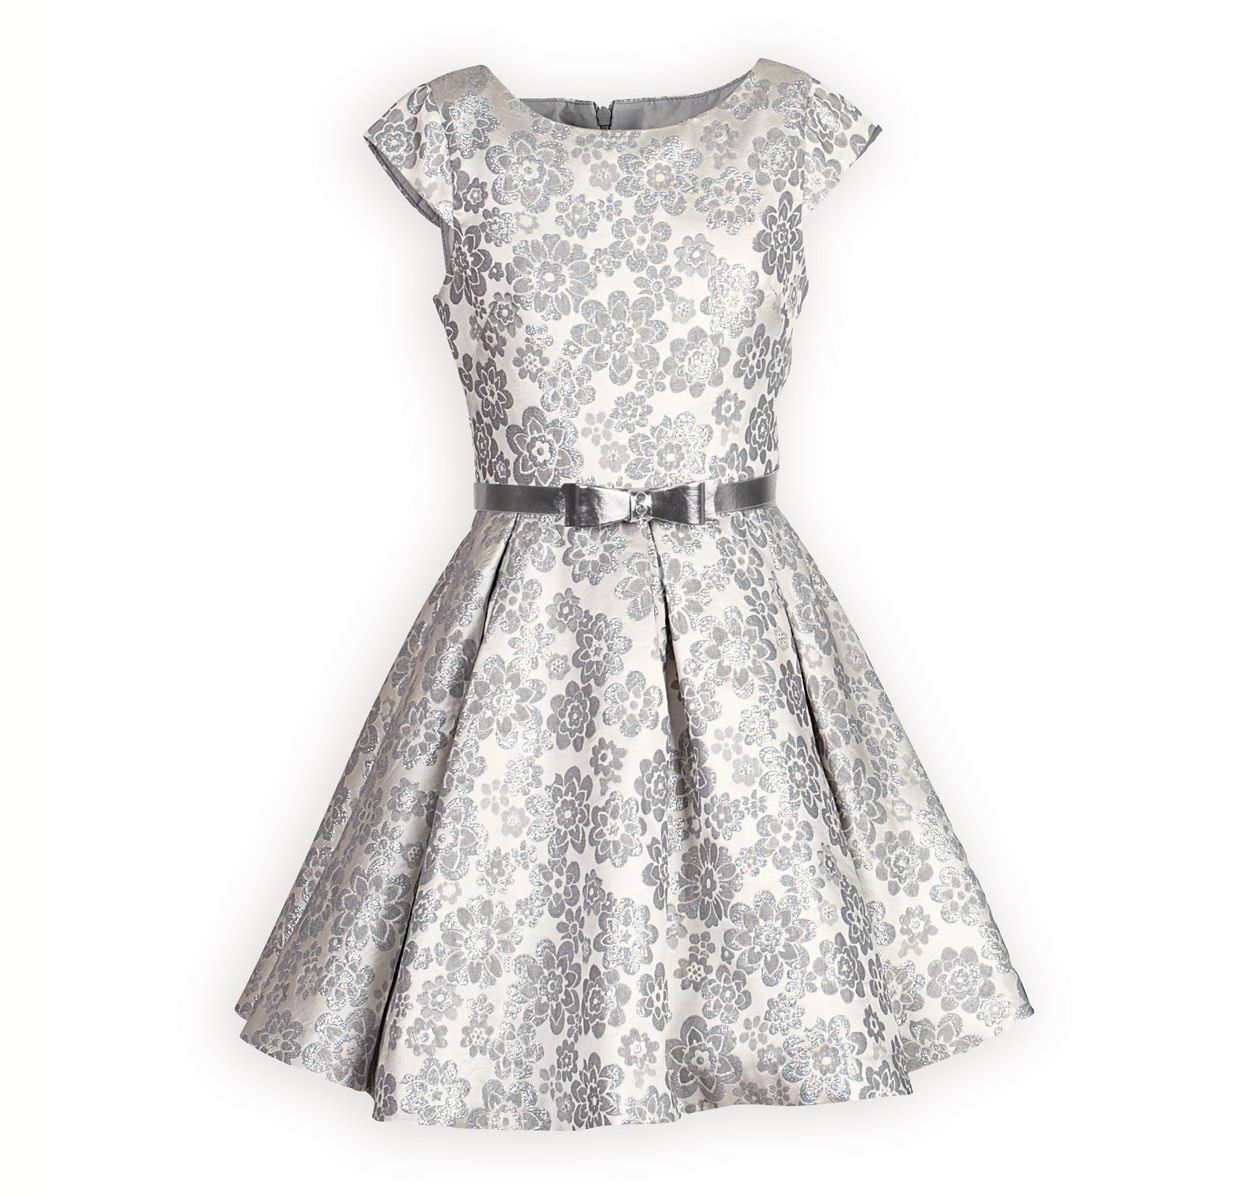 Silver Royalty Swing Dress | -ROUPAS Juvenil | Pinterest | Vests ...